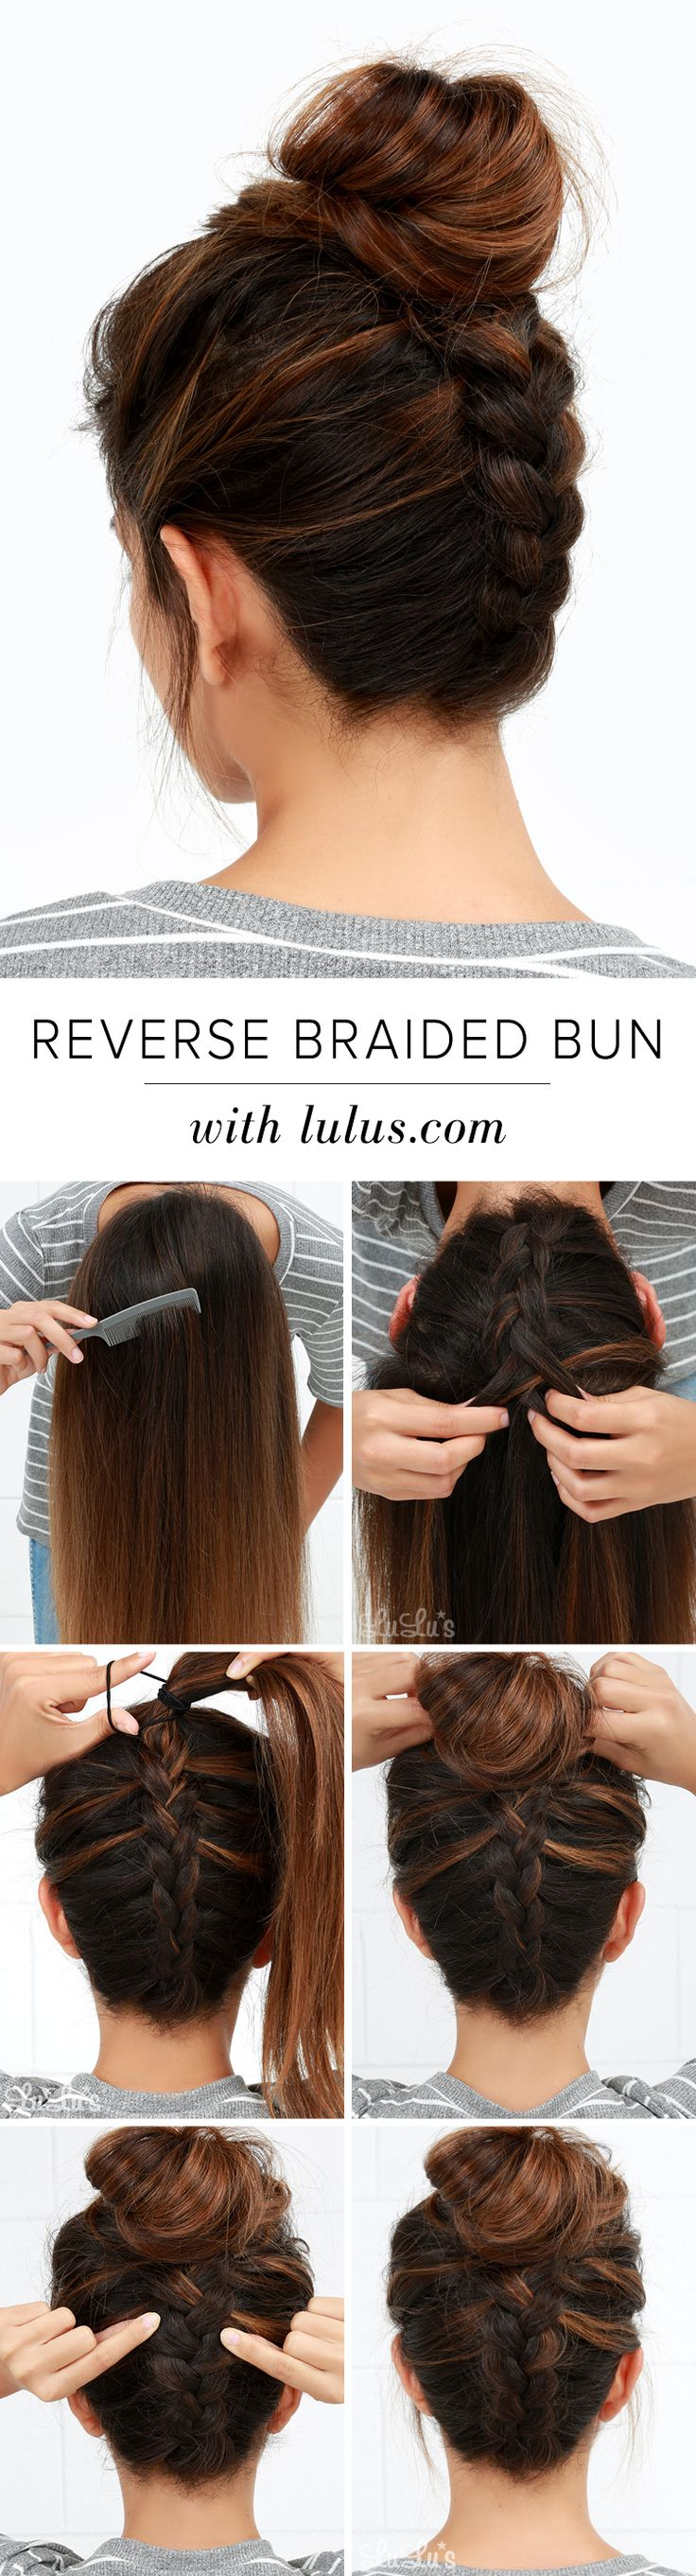 DIY Reverse Braided Bun Hair Tutorial